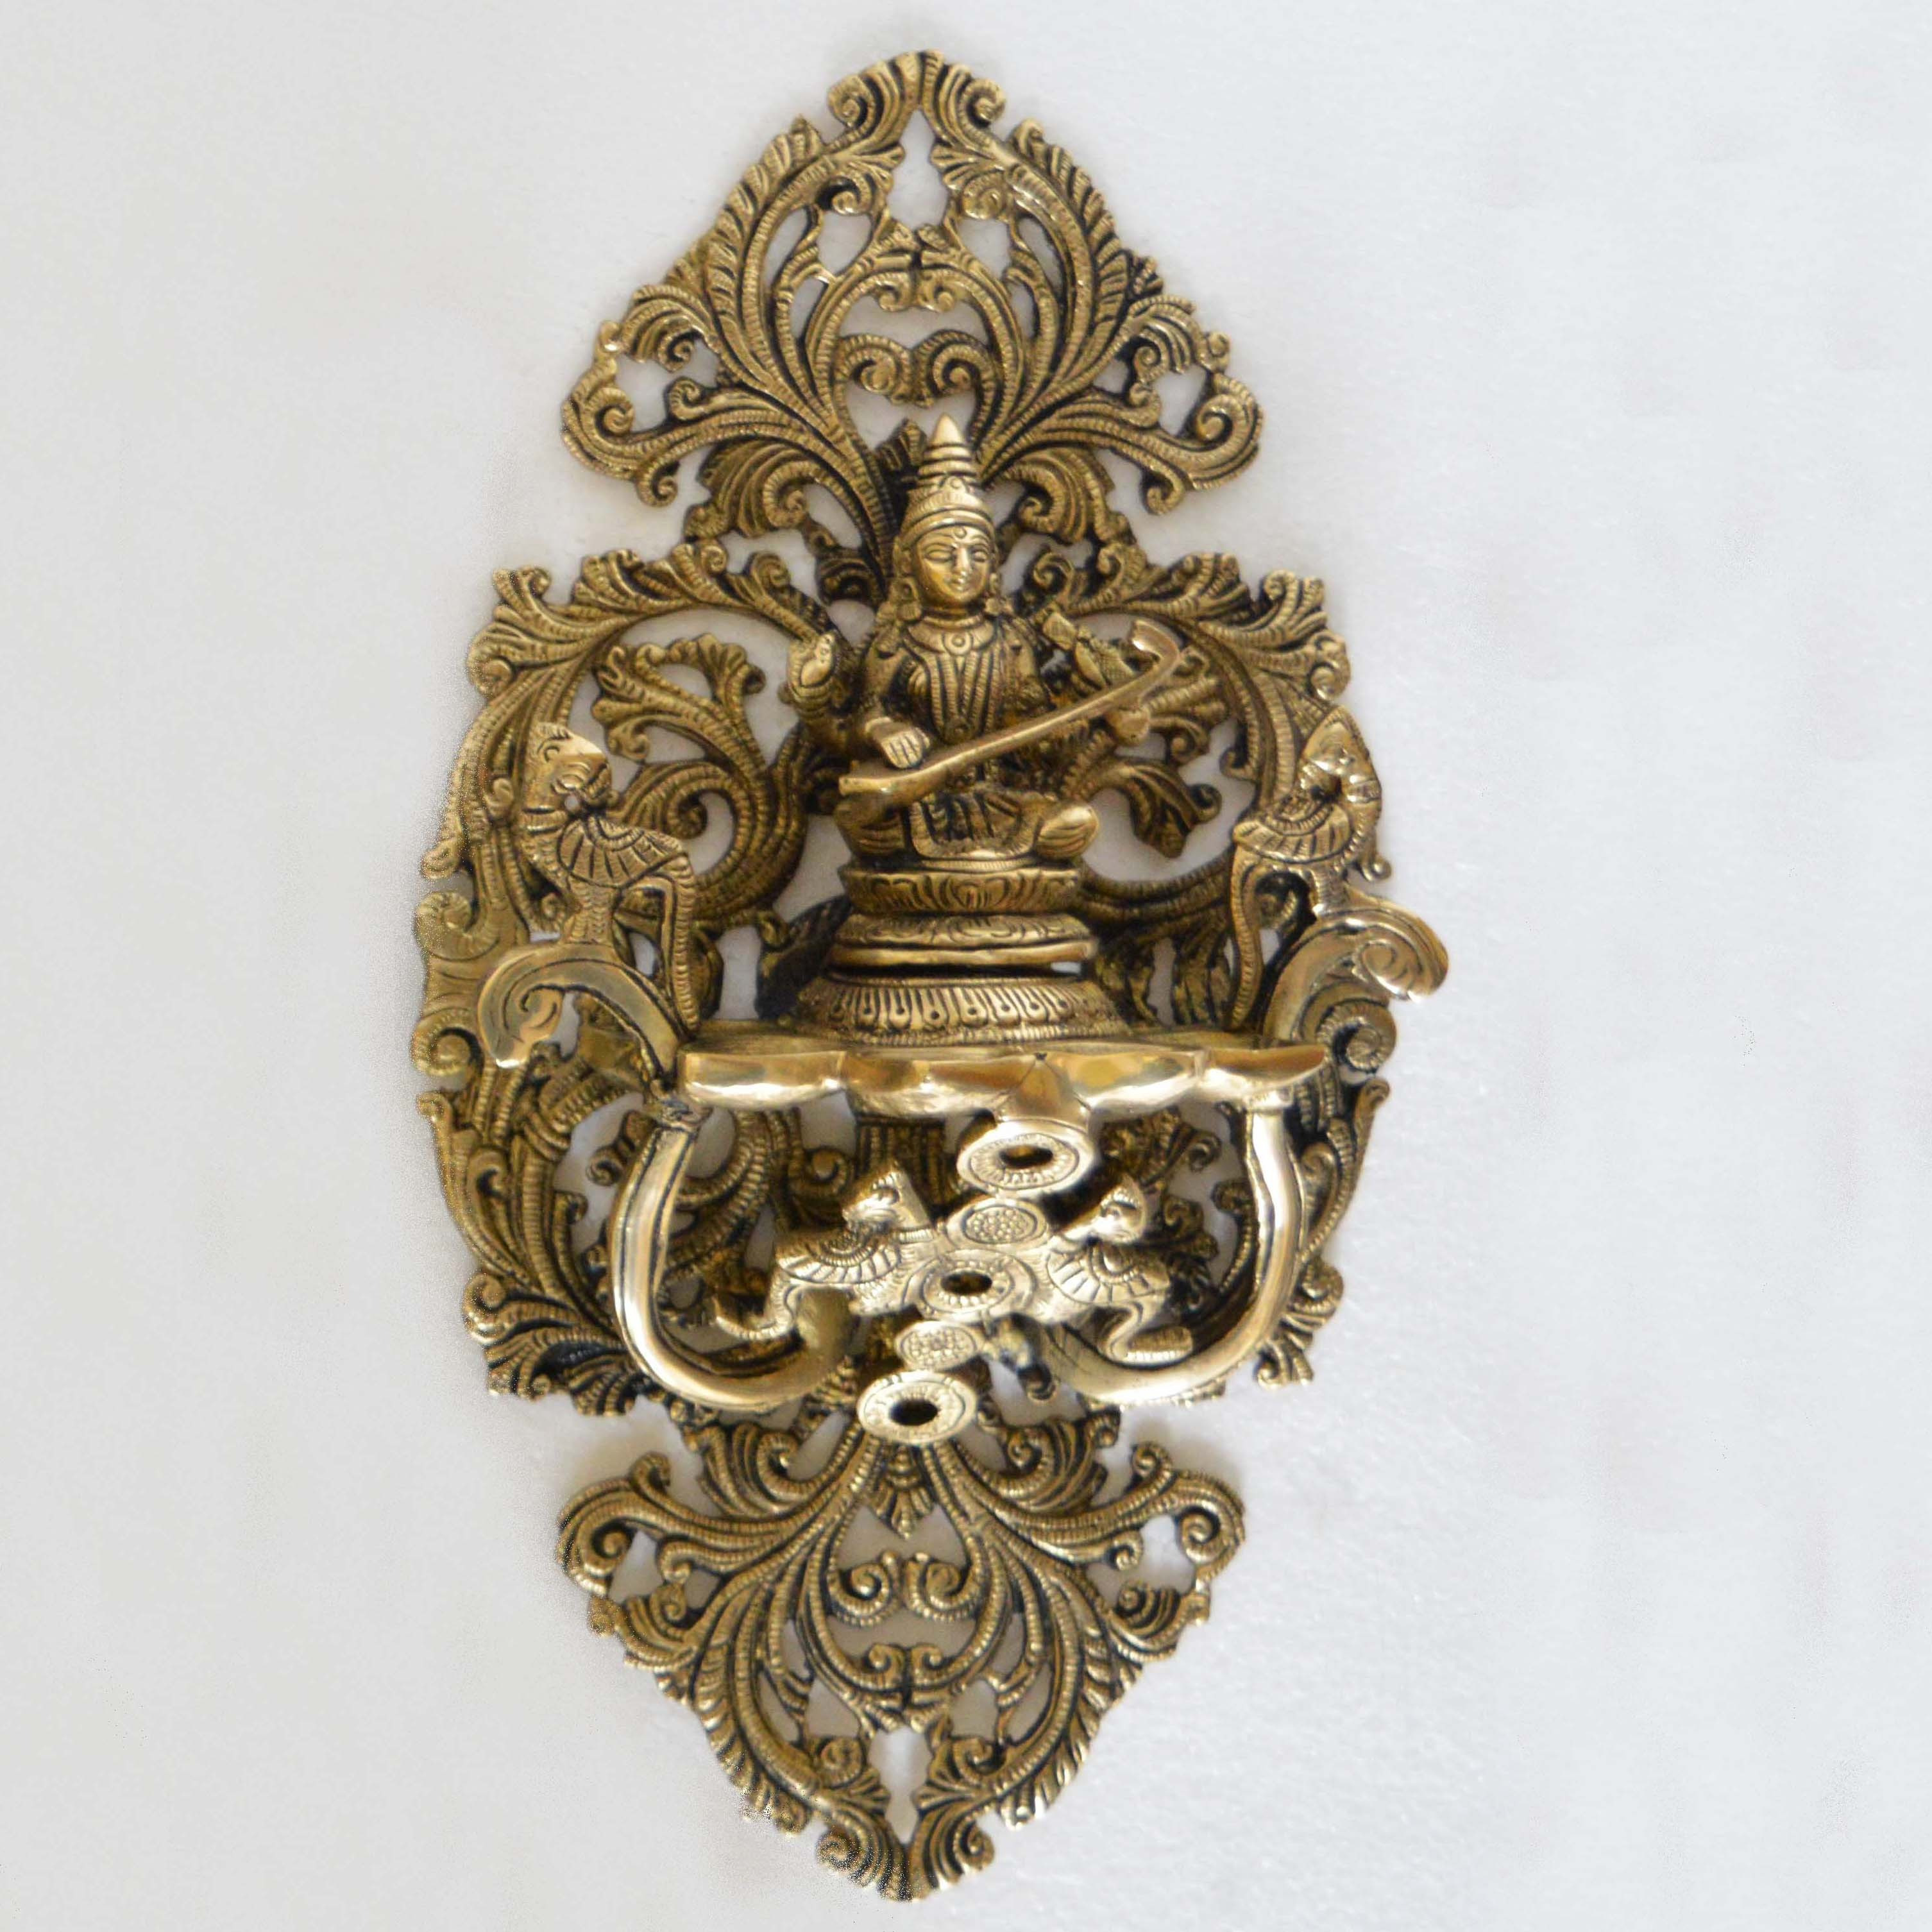 Goddess Saraswati Wall Plate Oil Deepak Or Diya with Unique Carving for Decor and Gifting Home decoration And wall d??cor